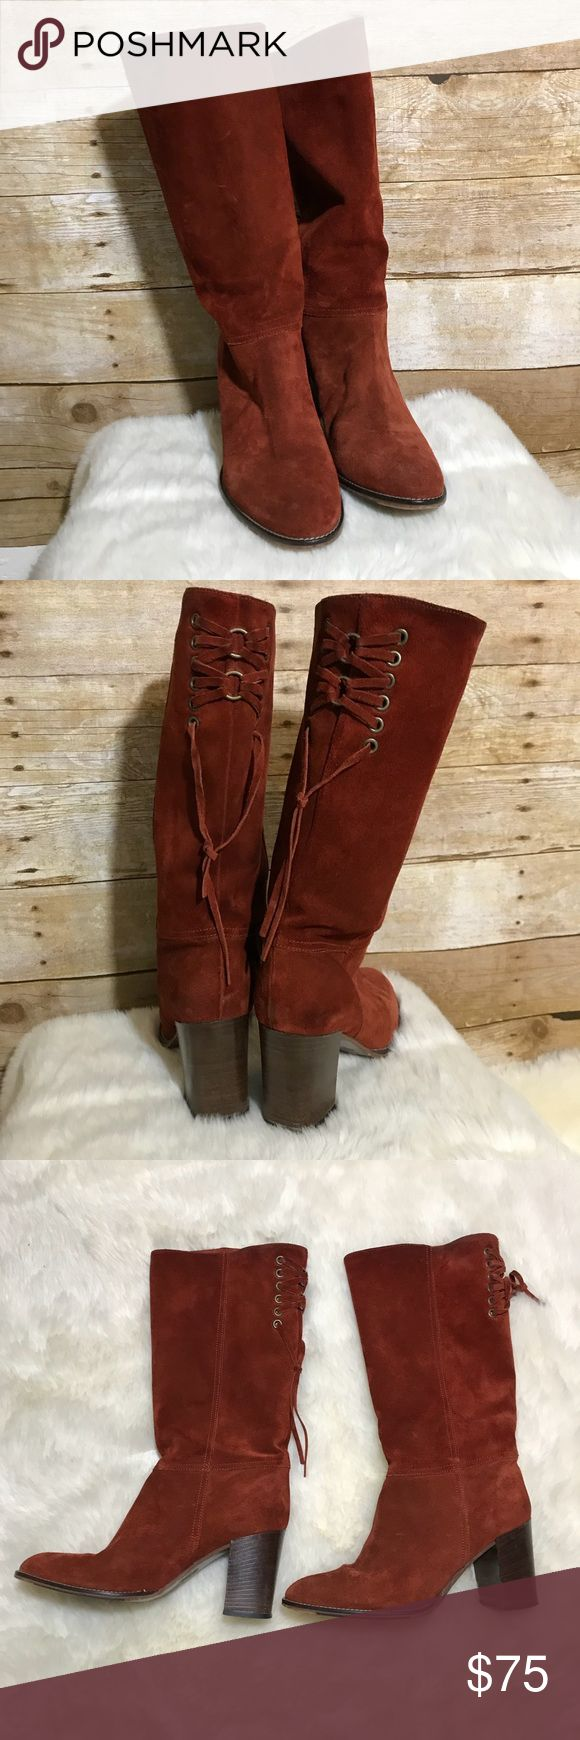 Cody Coach Boots Preloved Suede Coach Boots. Normal signs of wear. Beautiful burnt orange/brick color. Super cute with the Cabi Fiesta Poncho in my closet! Coach Shoes Heeled Boots